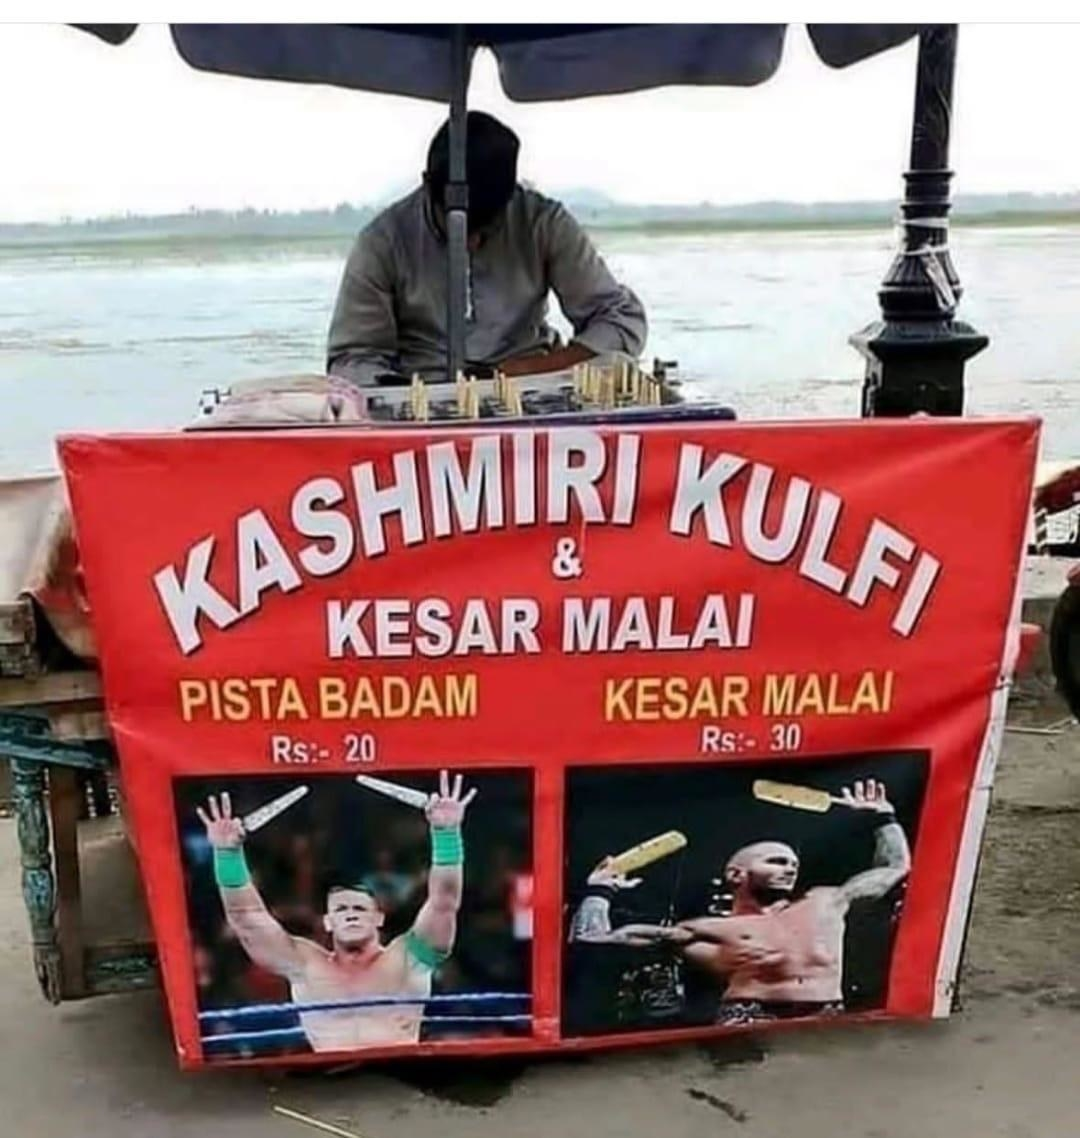 a man guards his kashmiri kulfi stand that apparently is endorsed by popular wrestlers such as john cena